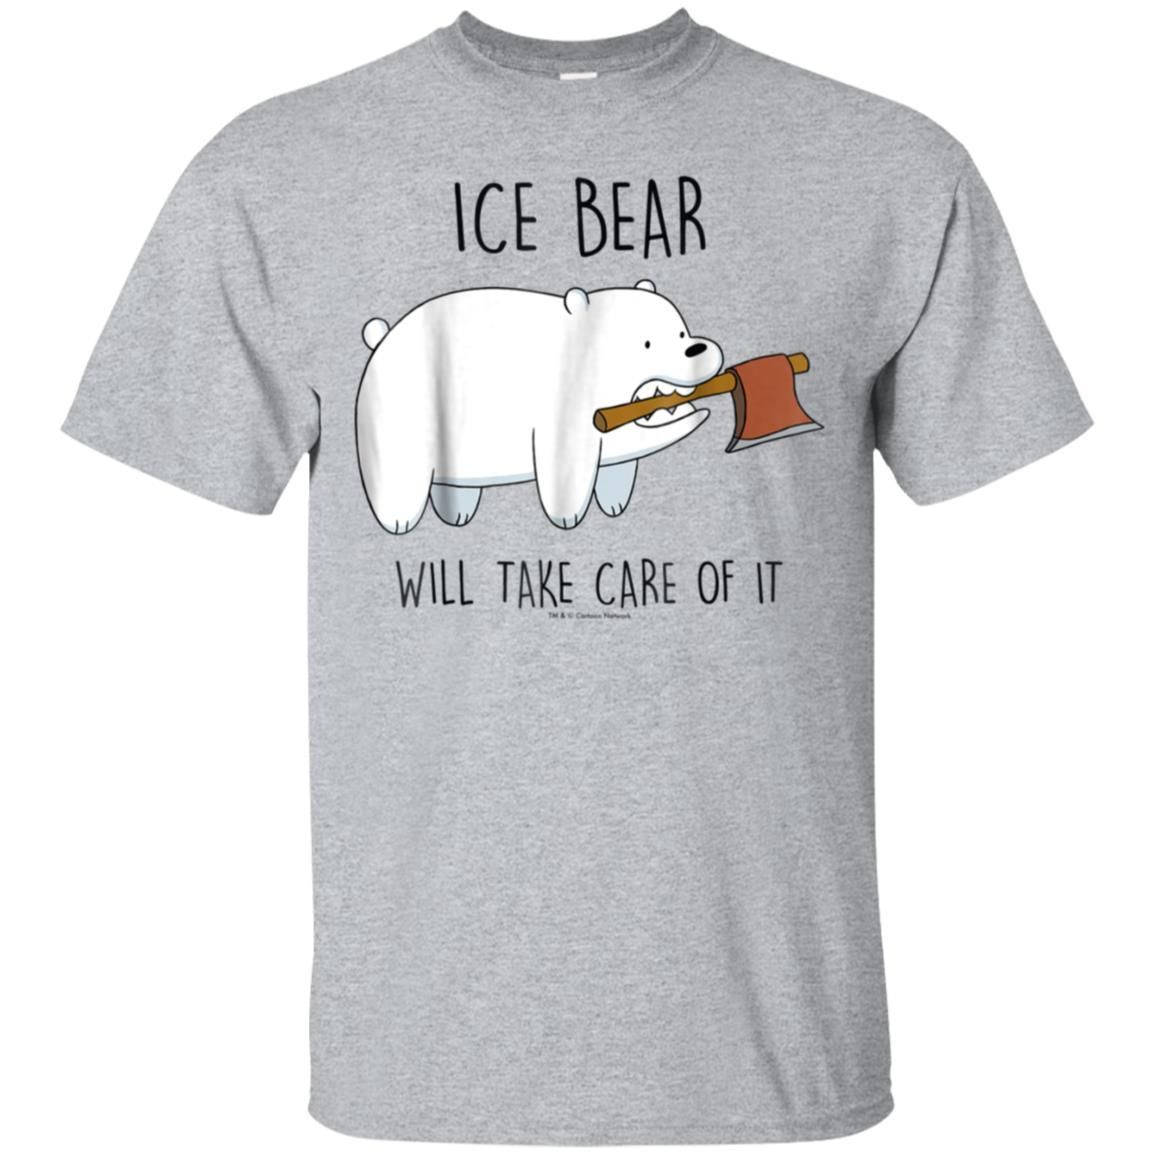 Awesome cn bare bears ice bear take care of it axe graphic